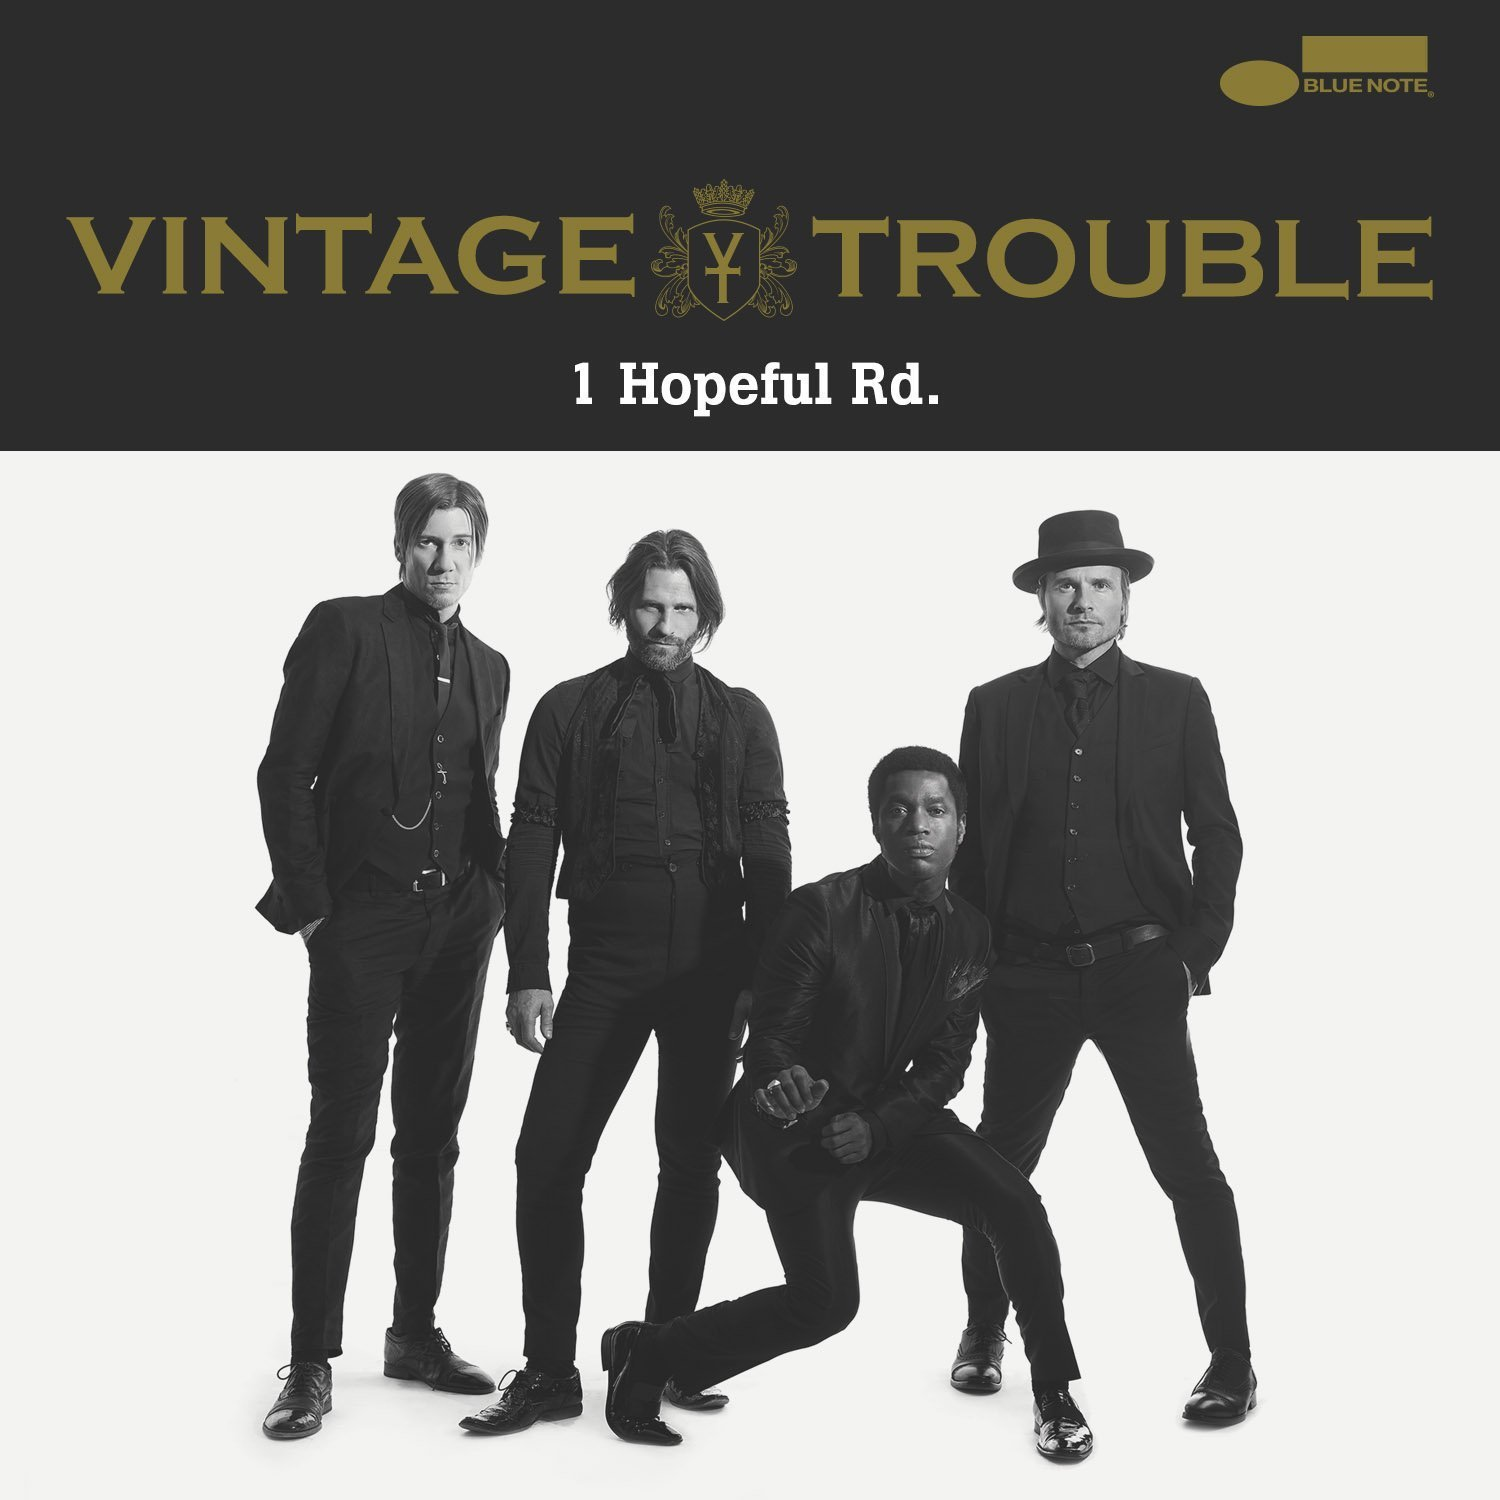 VINTAGE TROUBLE ANNOUNCE UK TOUR DATES – JUNE 2016